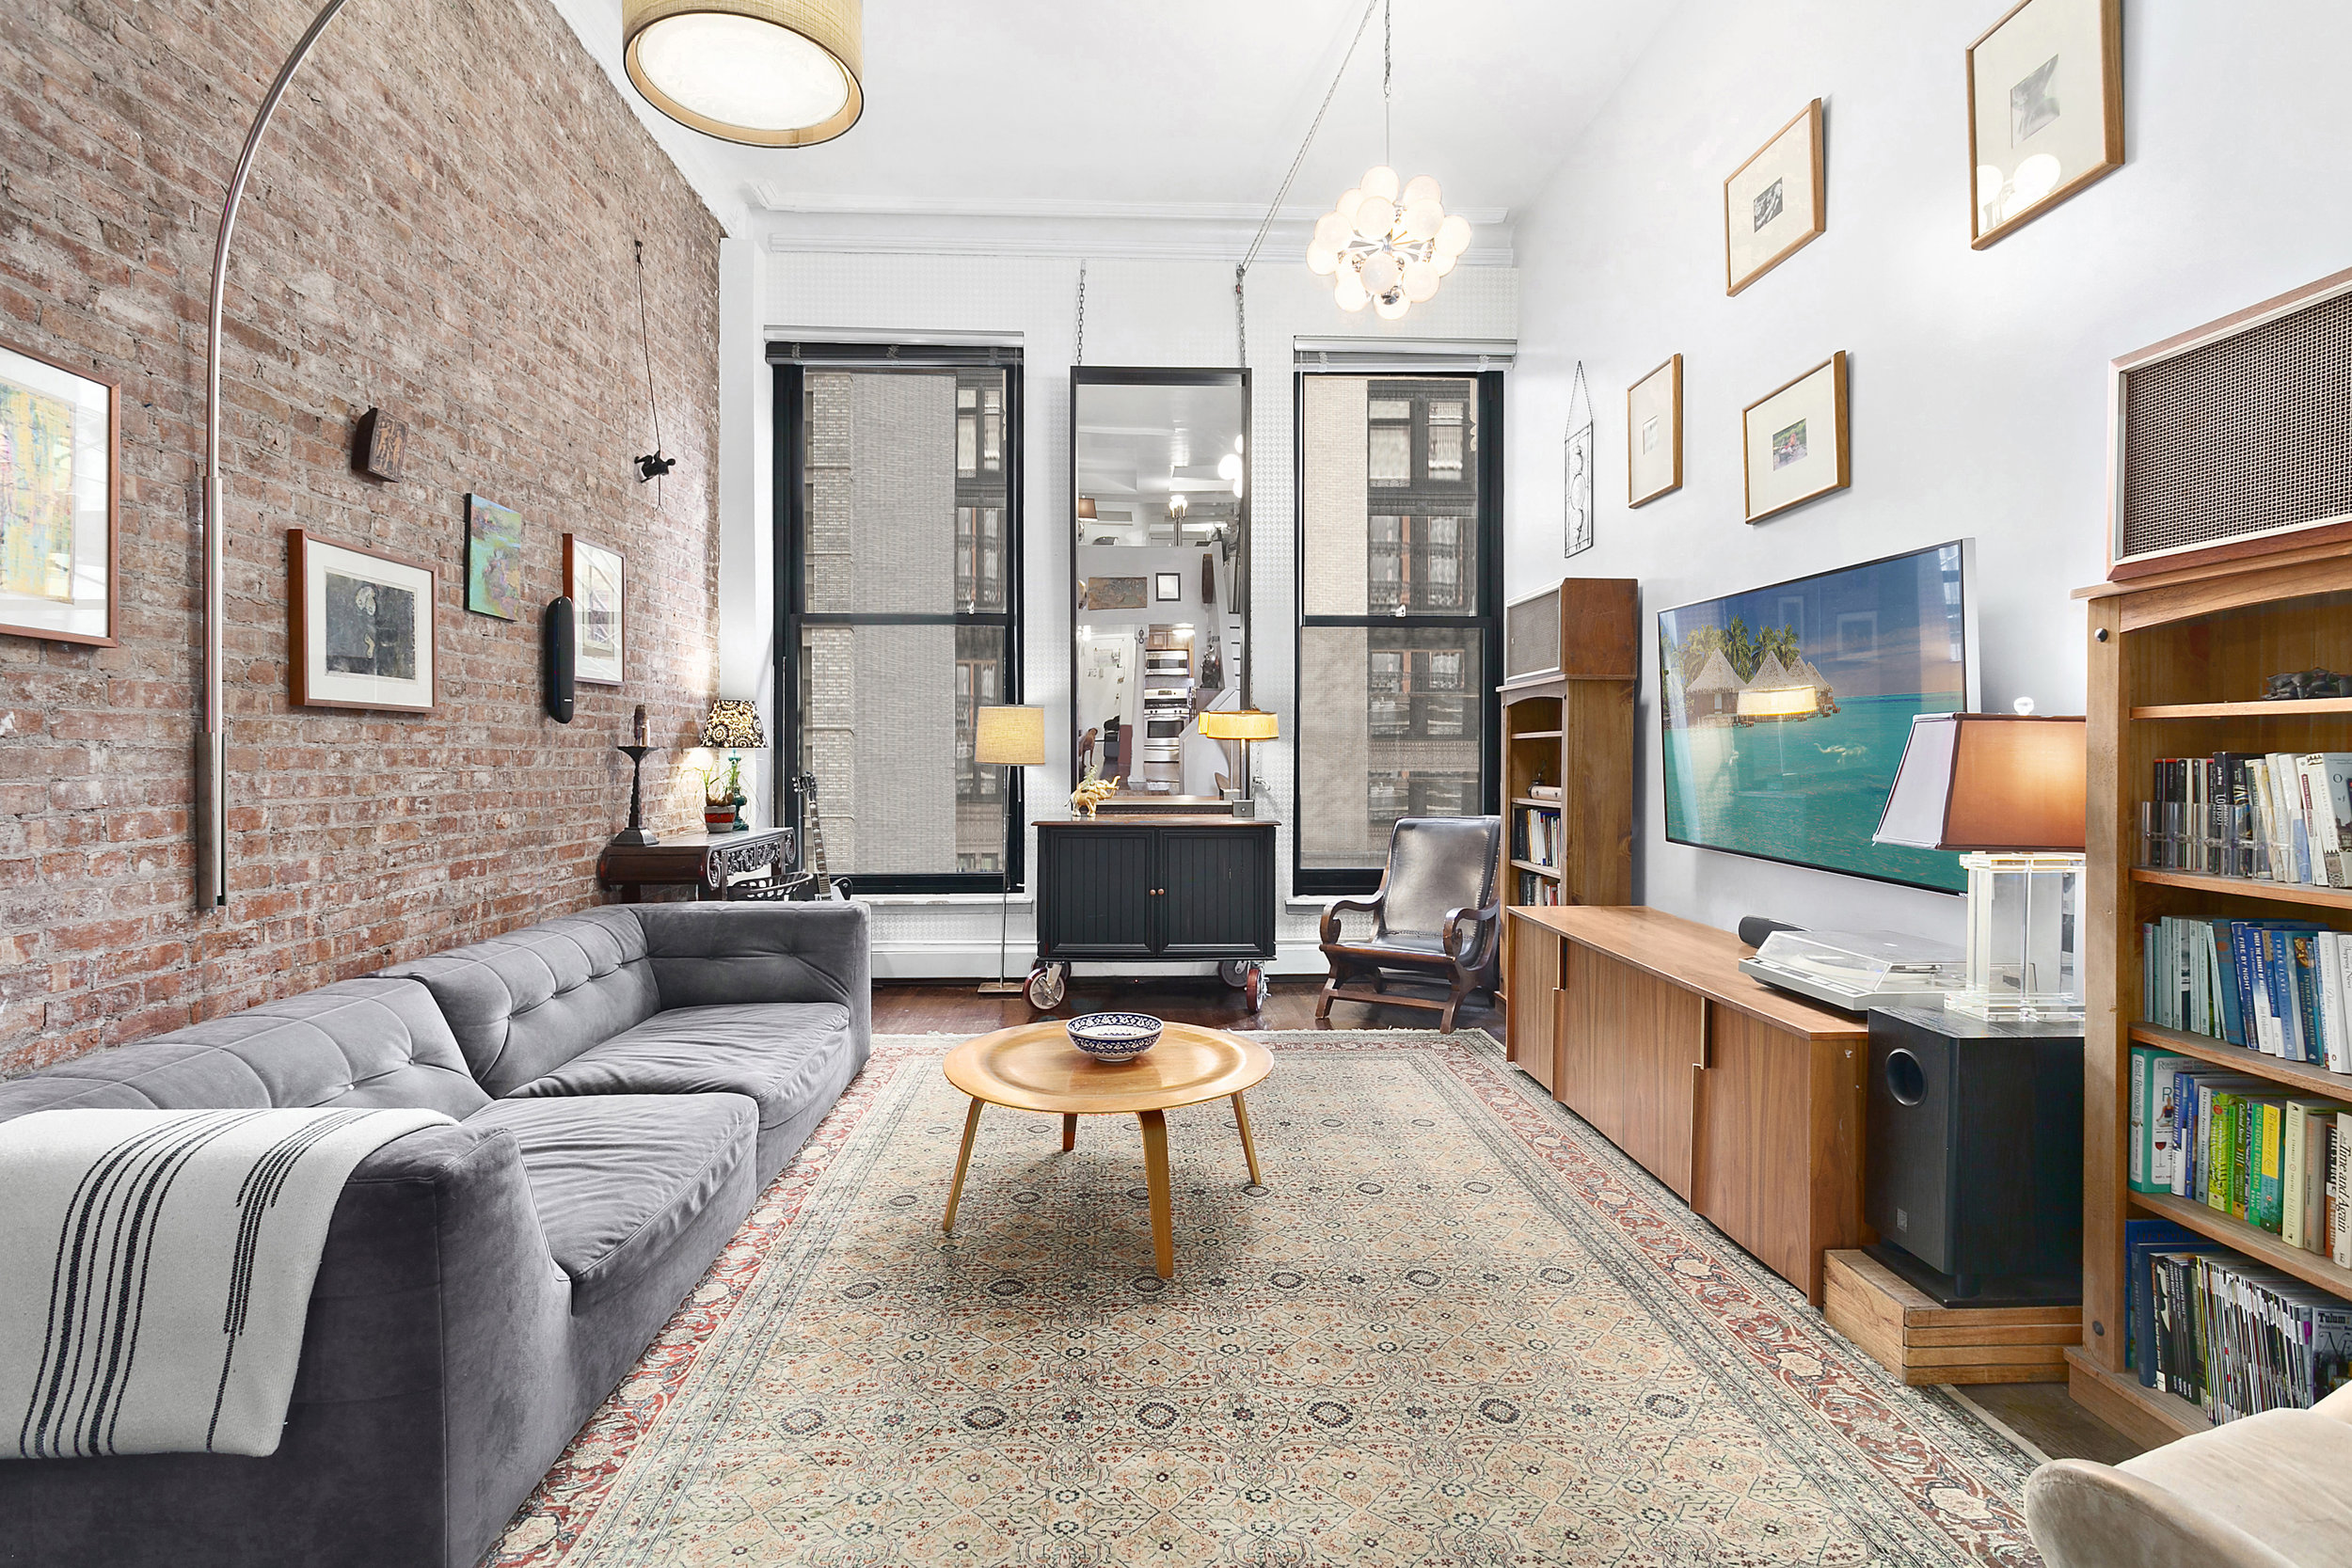 A 1,033 square foot one bedroom loft that checks all the boxes: location, amenities, exposed brick, charm, closet space and fully renovated! First open house will be Sunday, March 24th from 12-130pm.  Read More >